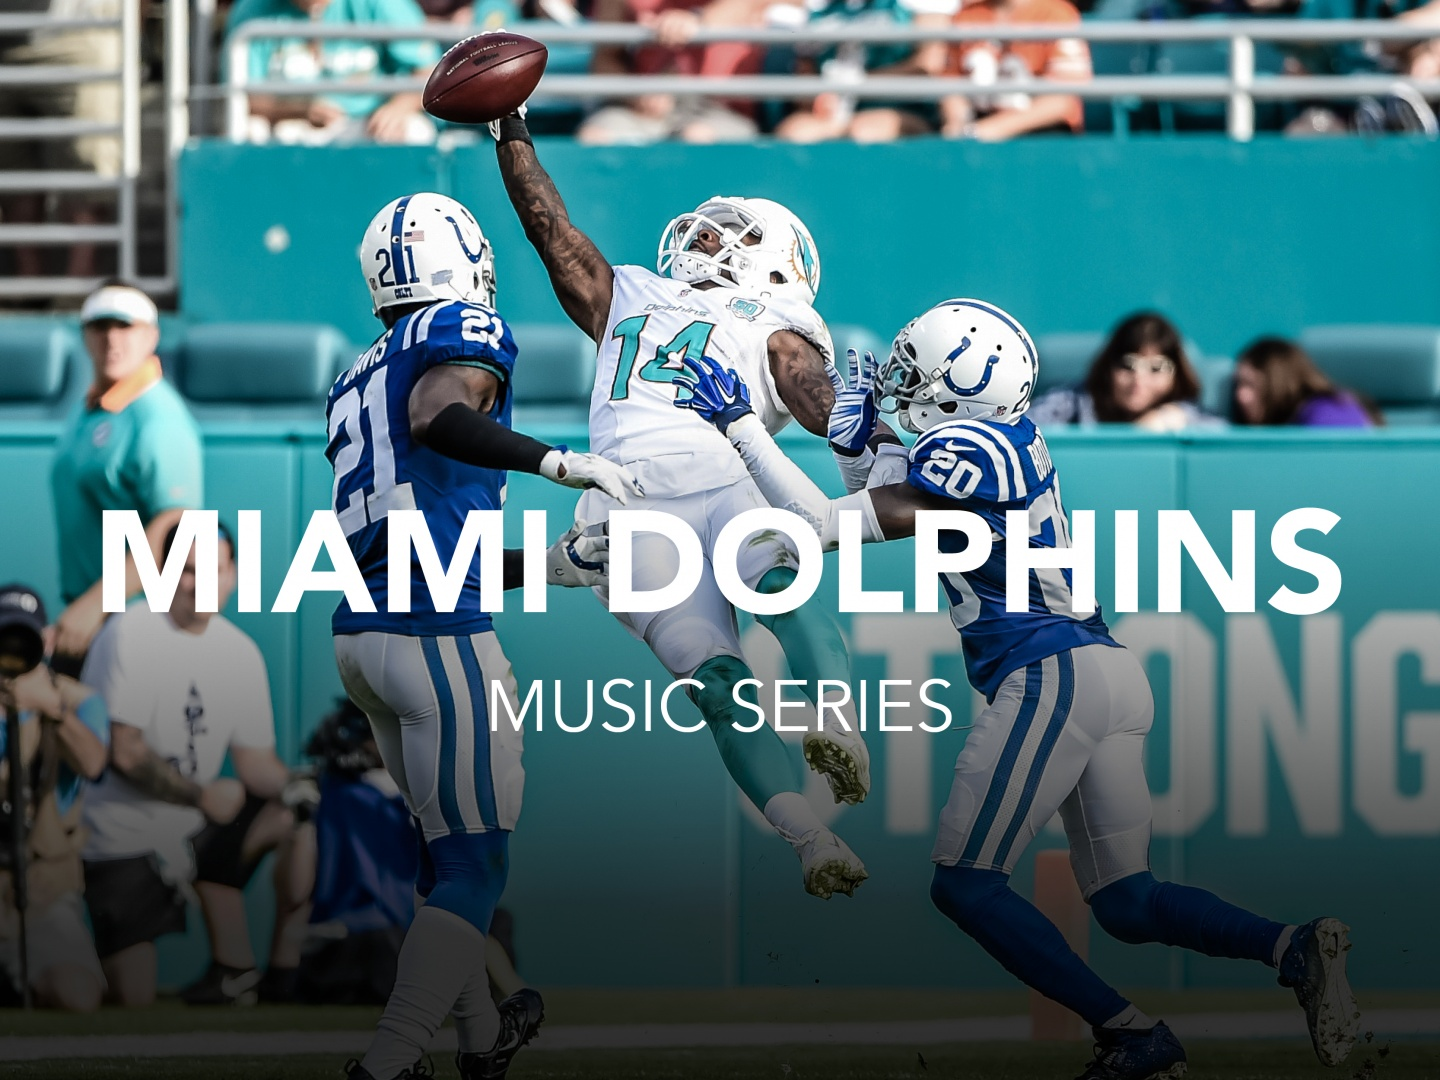 Miami Dolphins Music Video Series Thumbnail